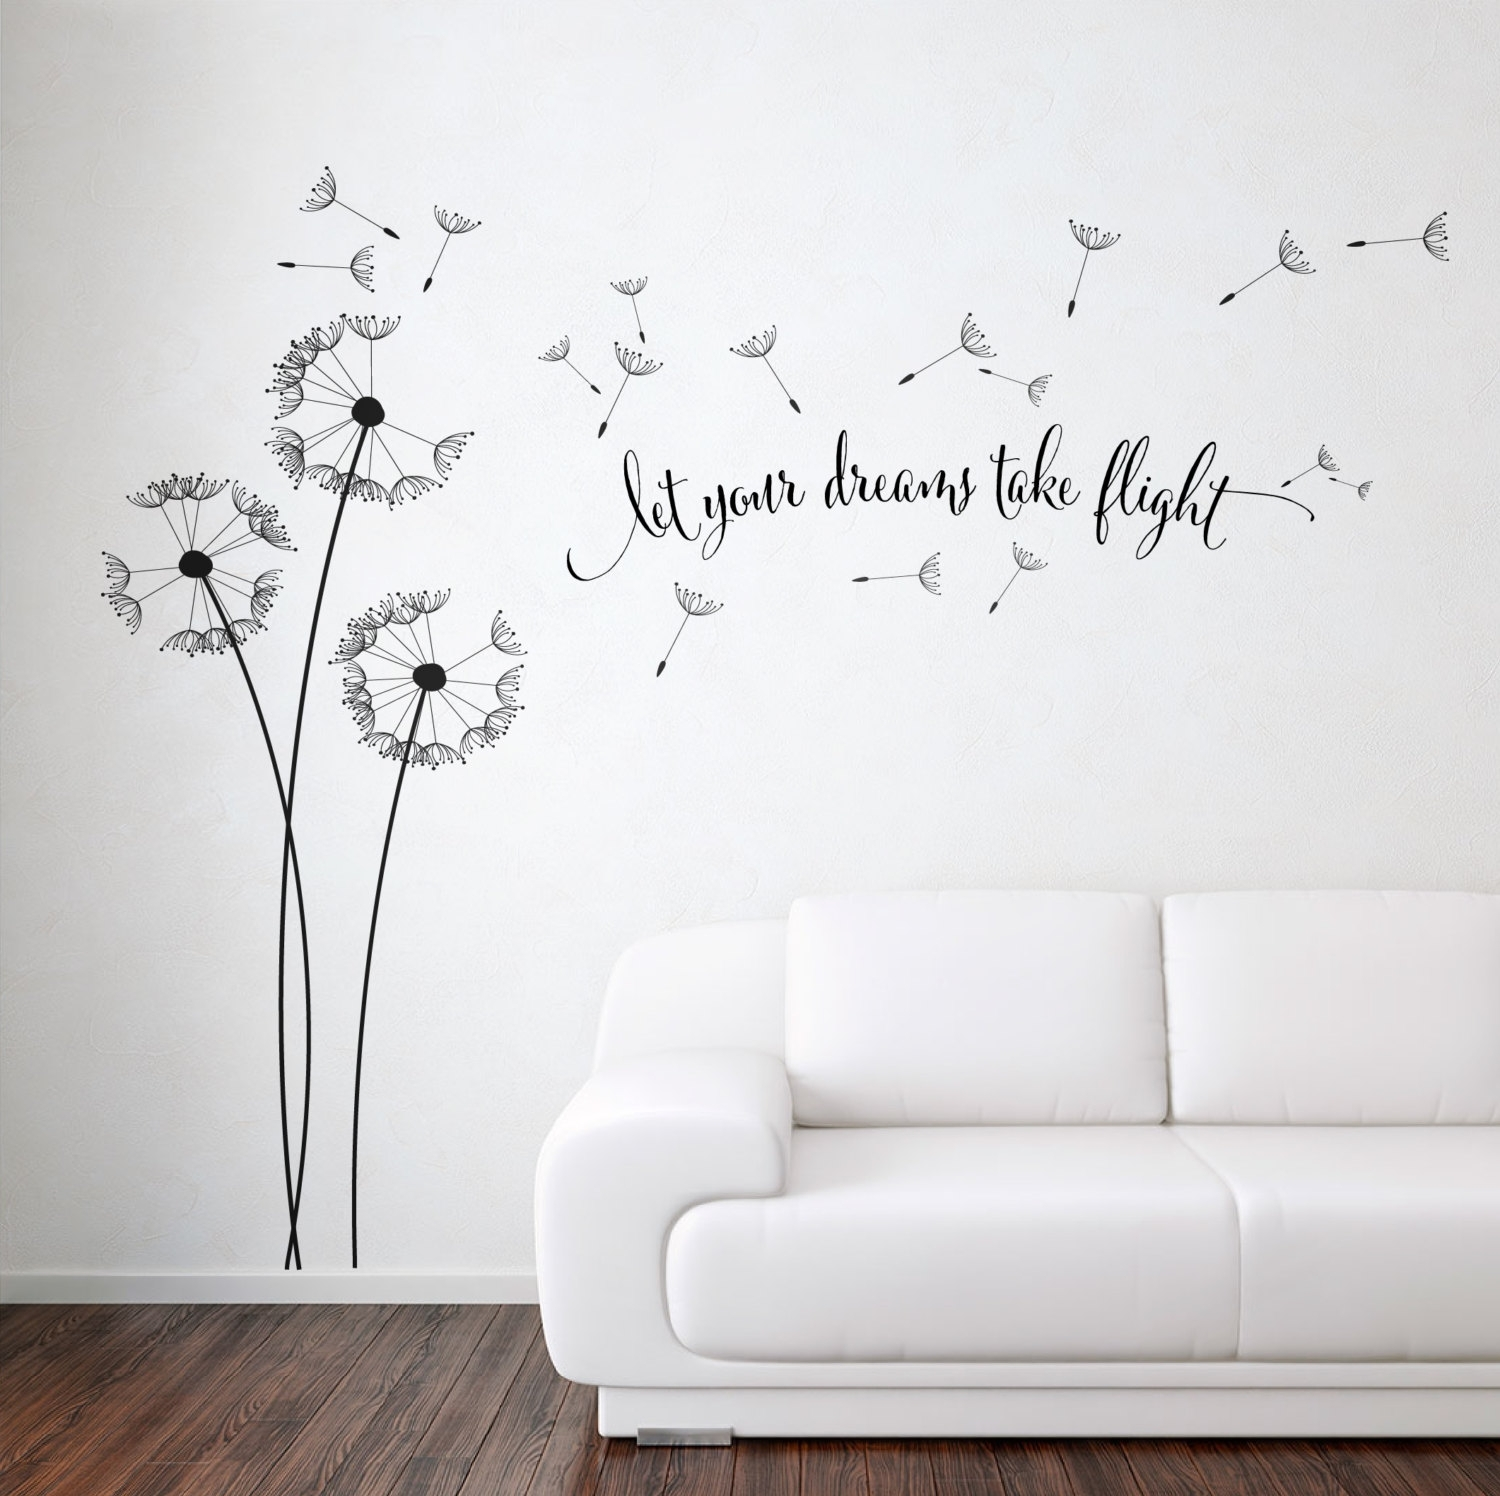 Dandelion Blowing With Quote Wall Sticker, Floral Sticker, Flower regarding Dandelion Wall Art (Image 2 of 20)